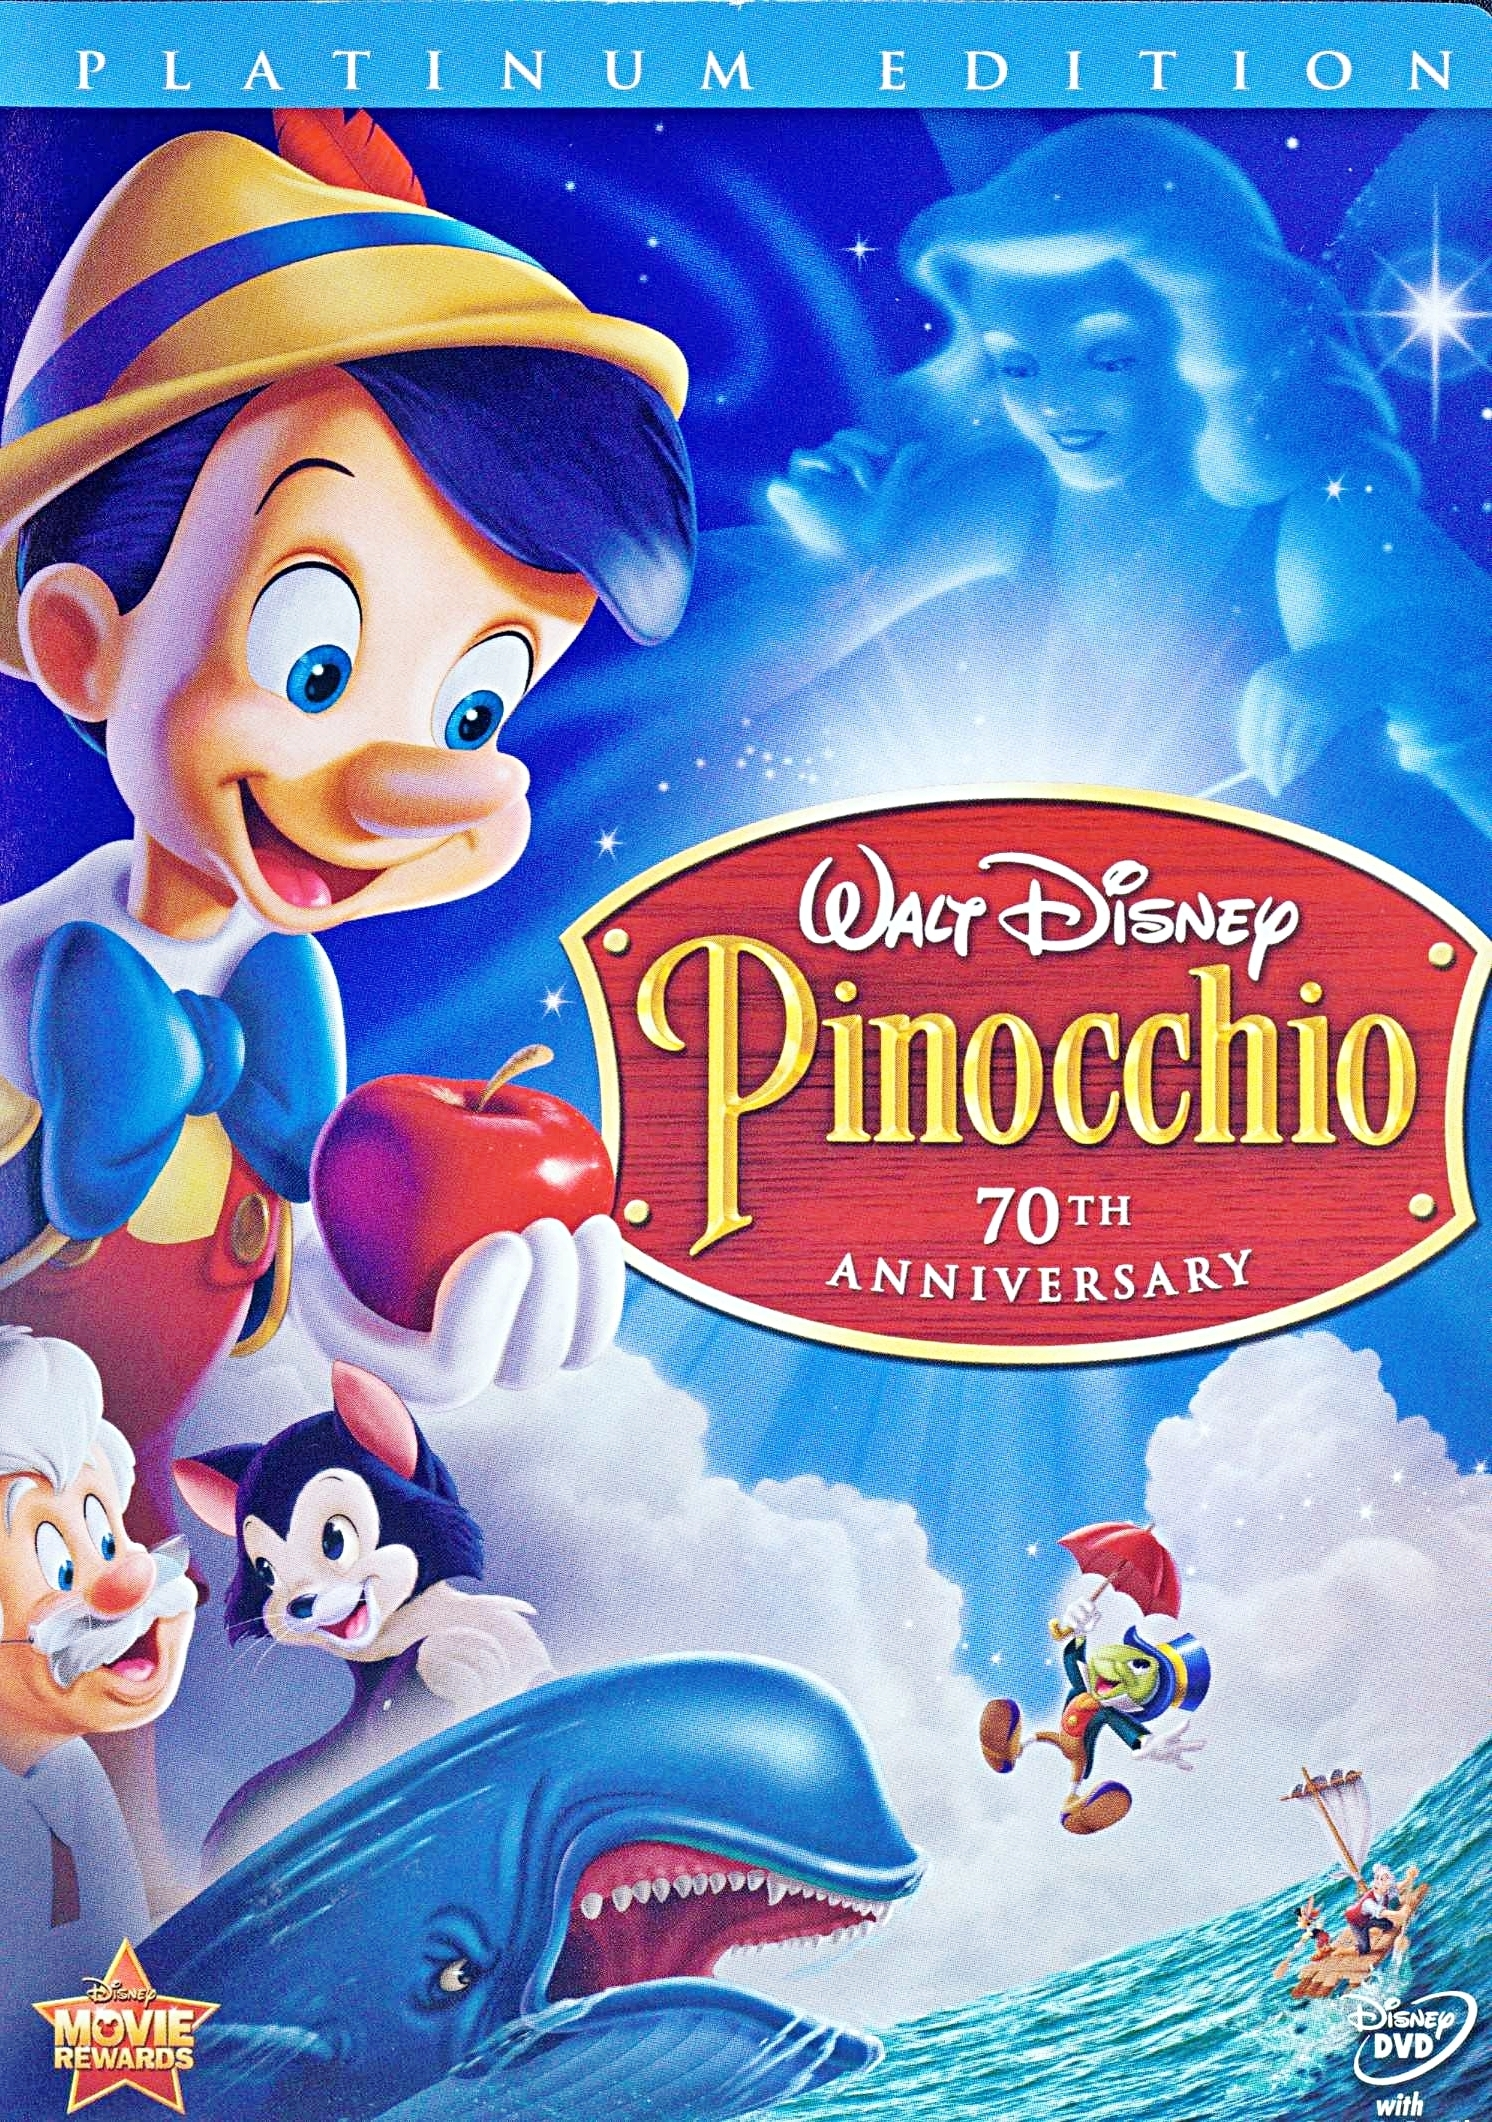 Epic Dvd Front Cover Pinnochio Two-Disc Pla...